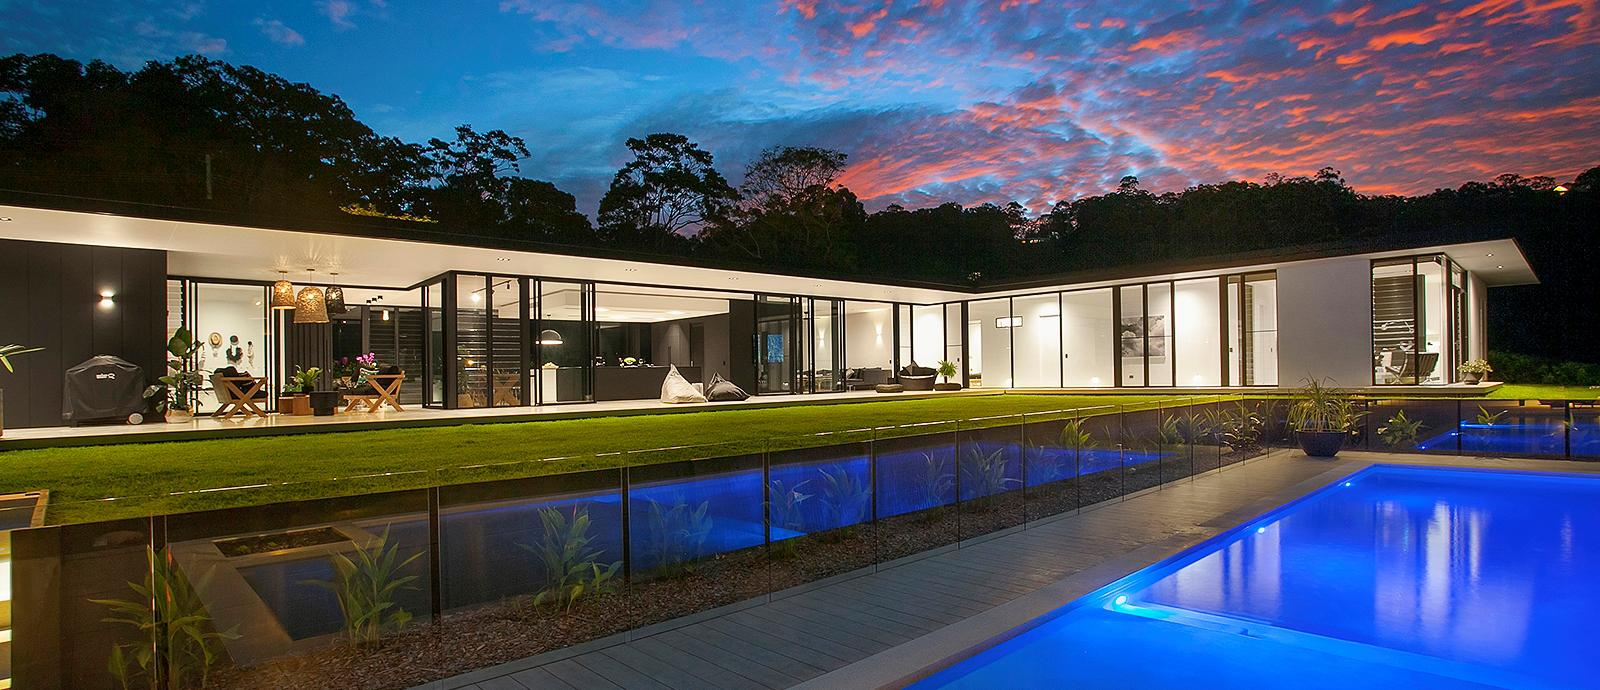 Sarah_Waller_Design_Hero_3_Doonan_Glasshouse_Sunset_image_1600_1